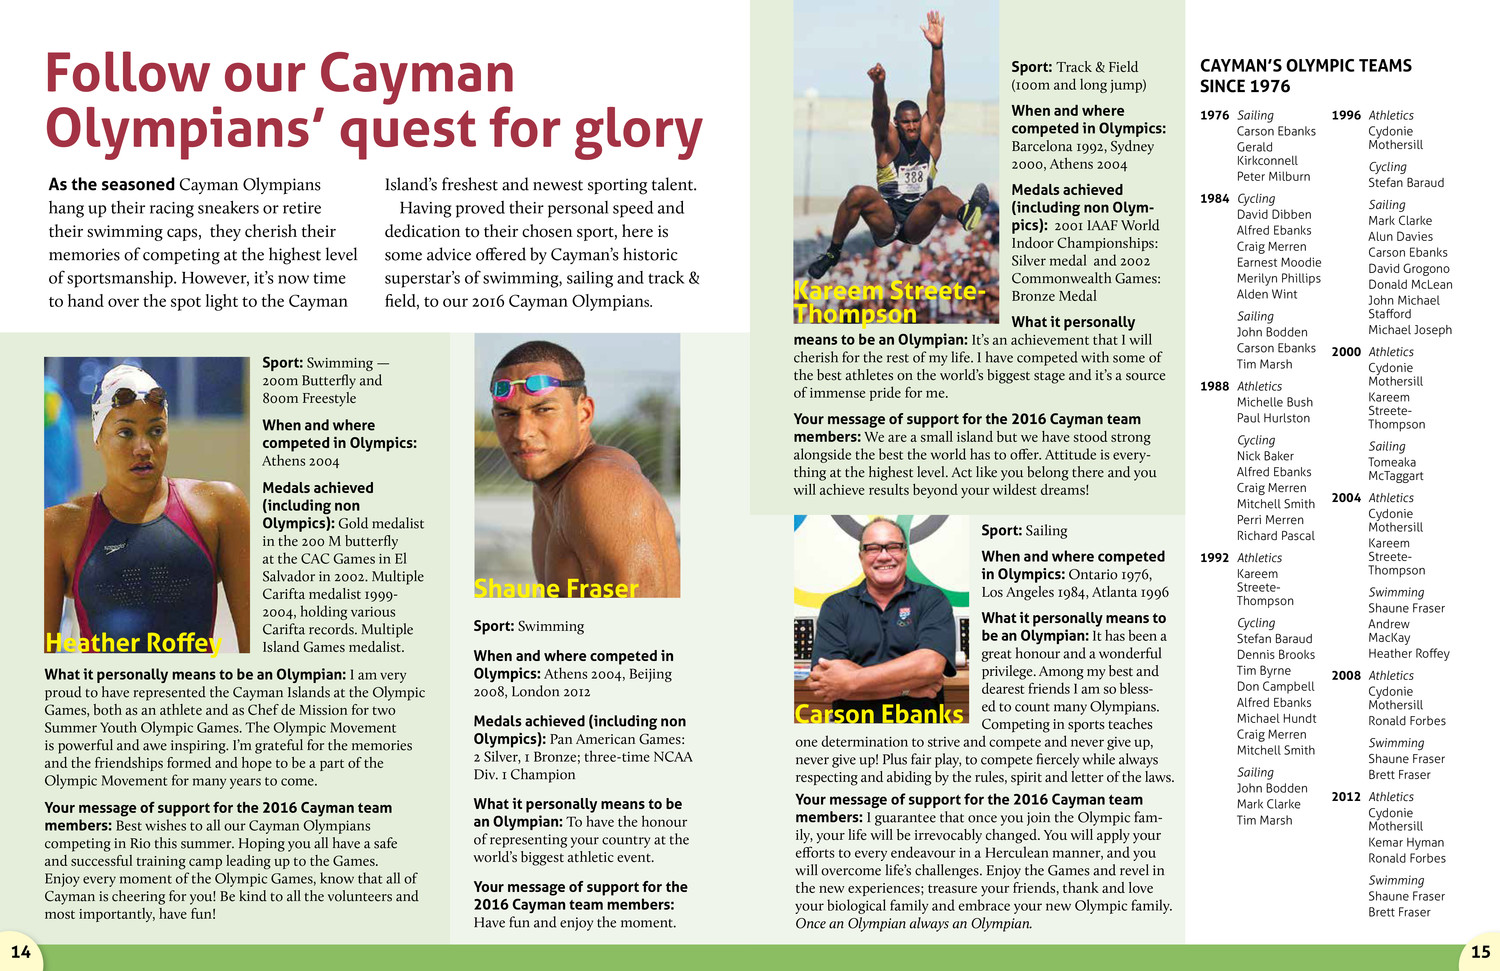 Cayman Island Olympians from previous games weighed in on the experience.